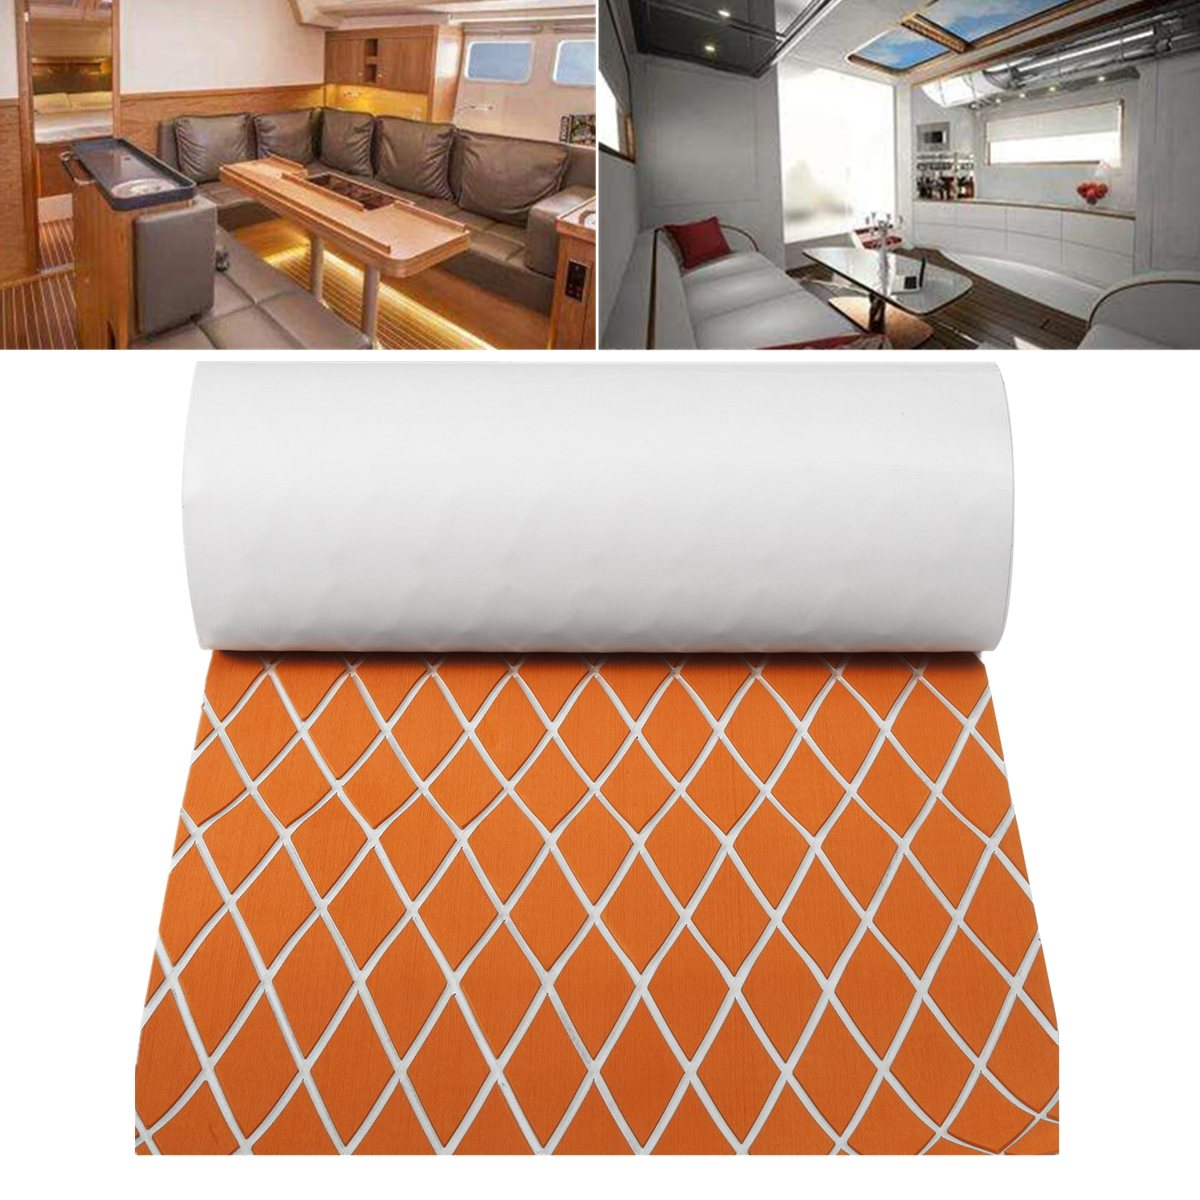 60CMx190CM EVA Foam Marine Teak Sheet Flooring RV Touring Car Mat Synthetic Boat  Orange + White Decking Yacht Pad single sided blue ccs foam pad by presta